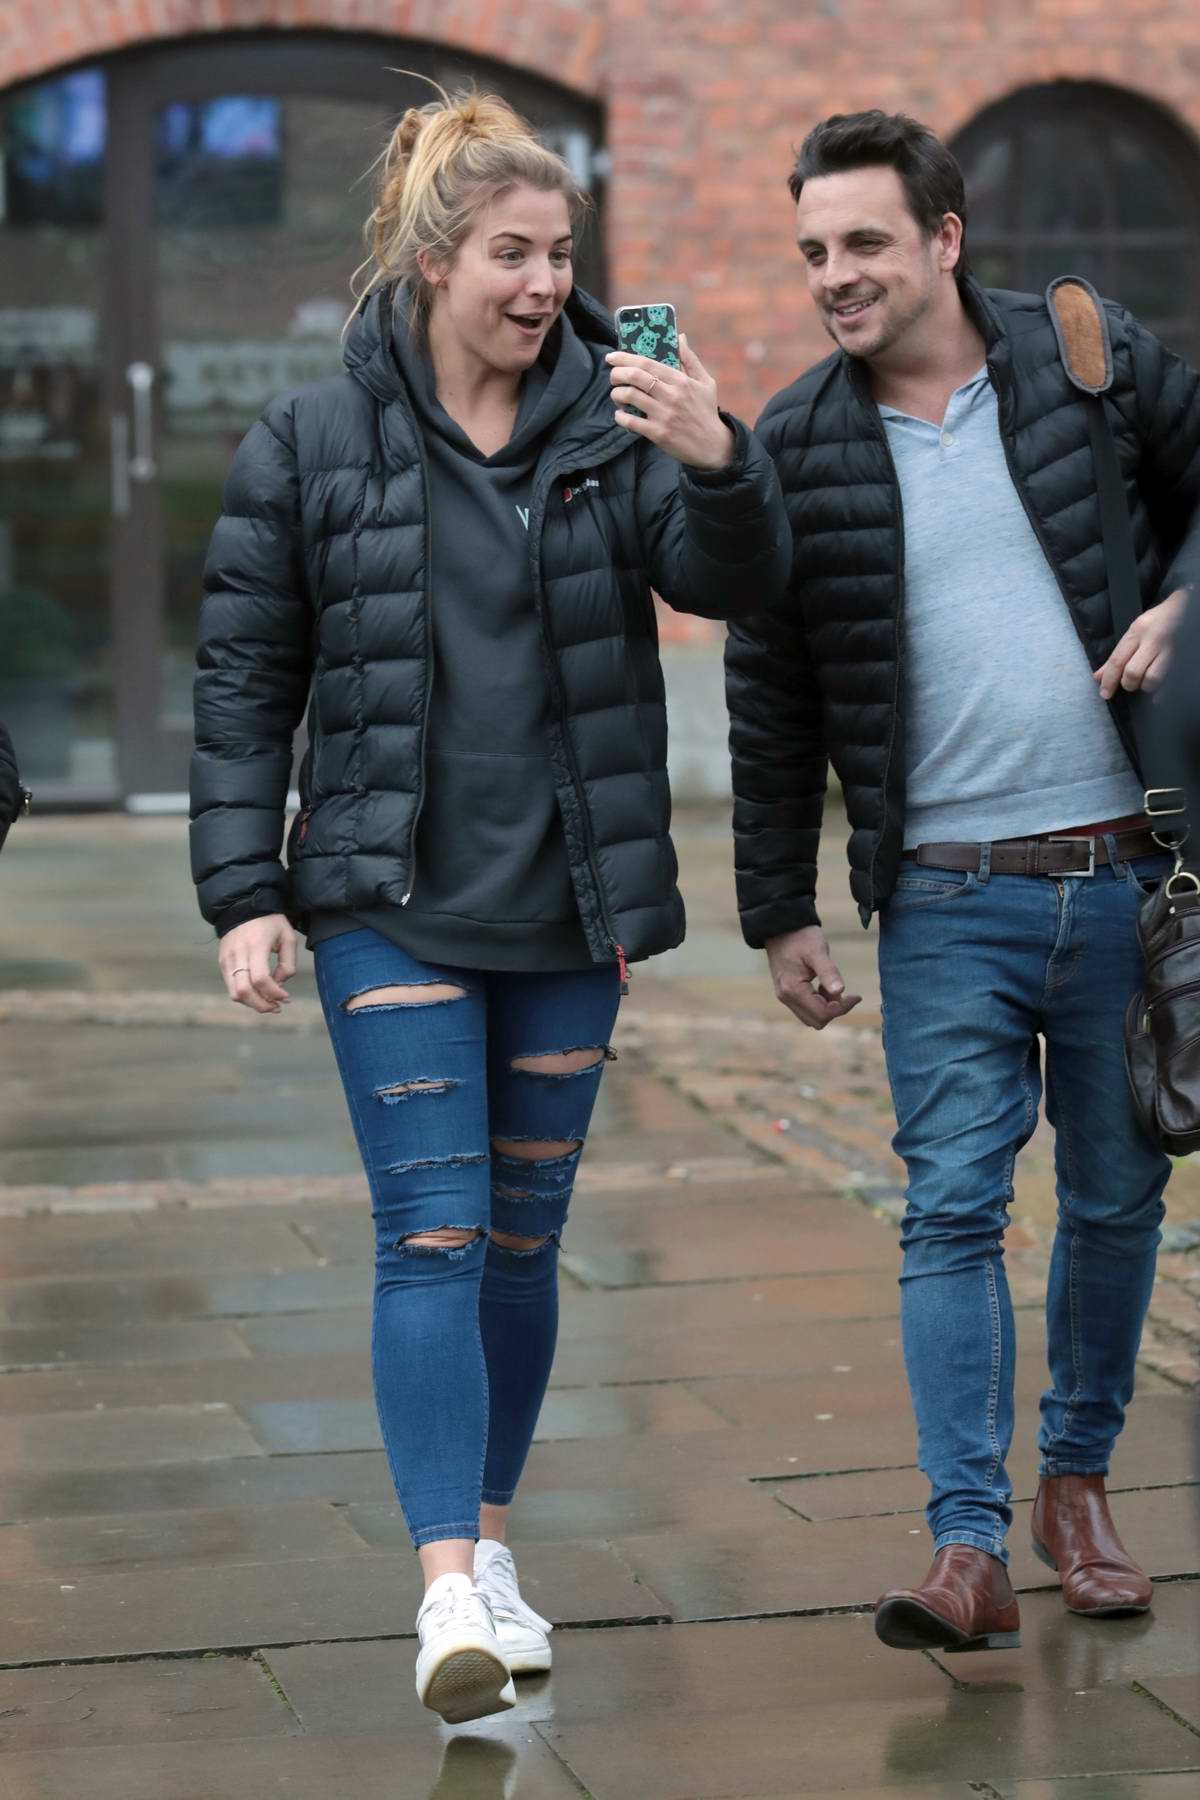 Gemma Atkinson spotted FaceTiming while she leaves Key 103 Radio in Manchester, UK